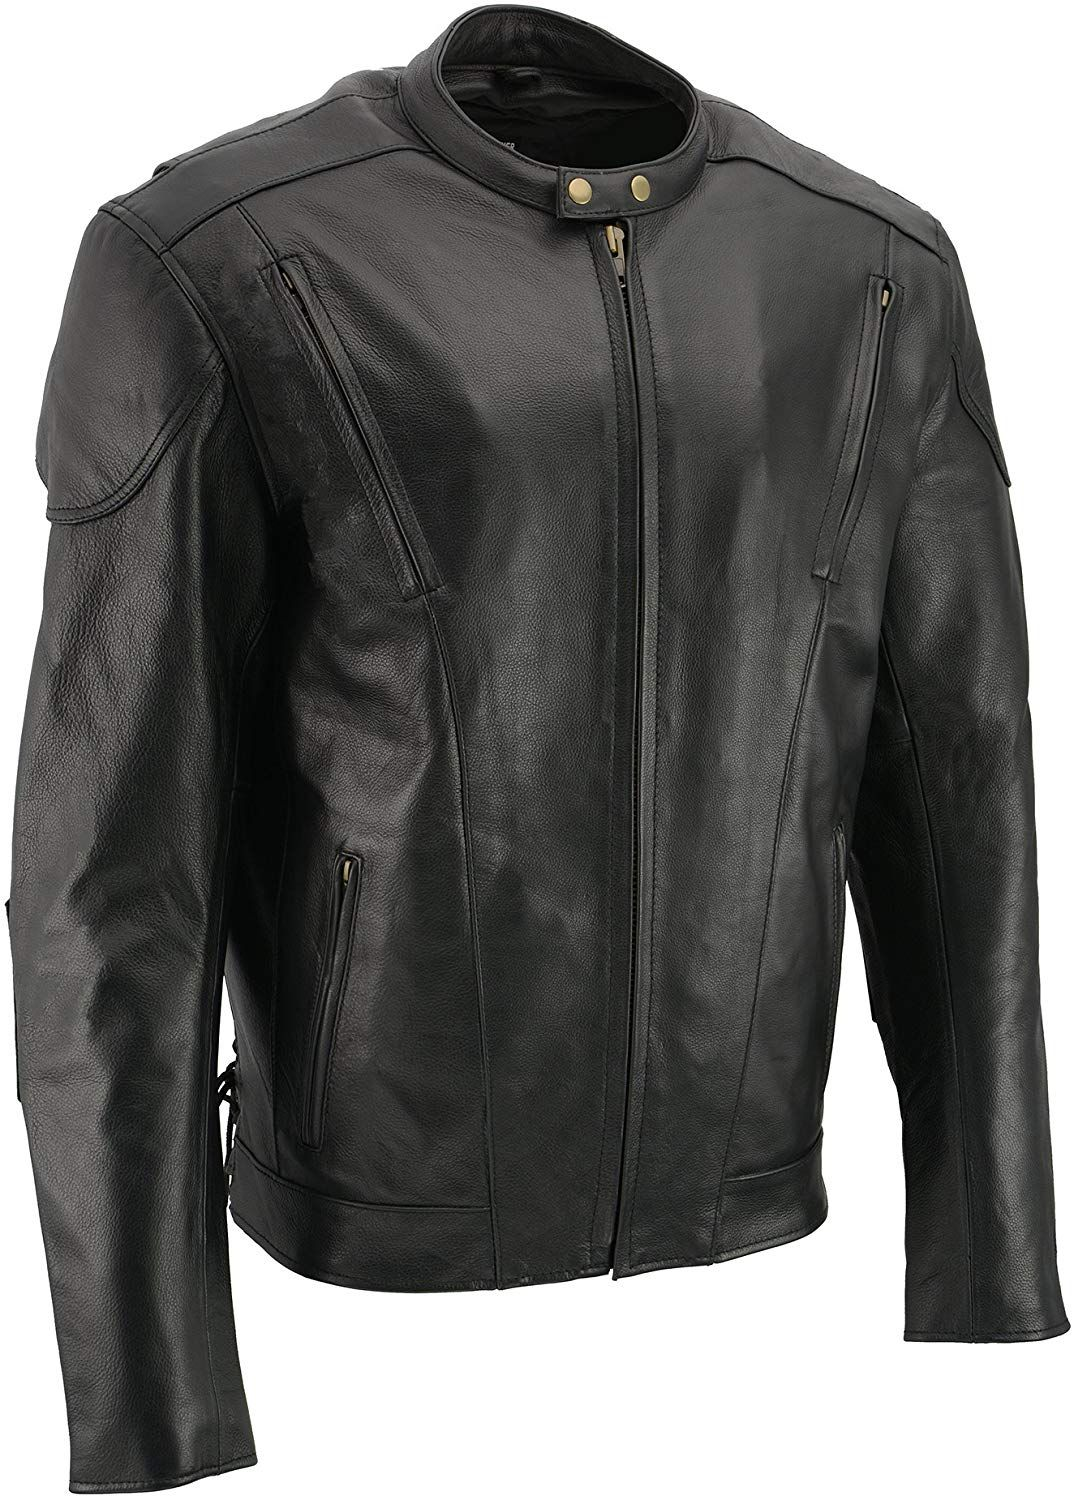 Black Tall Men S Cowhide Leather Motorcycle Jacket Leather Motorcycle Jacket Motorcycle Jacket Biker Outfit [ jpg ]